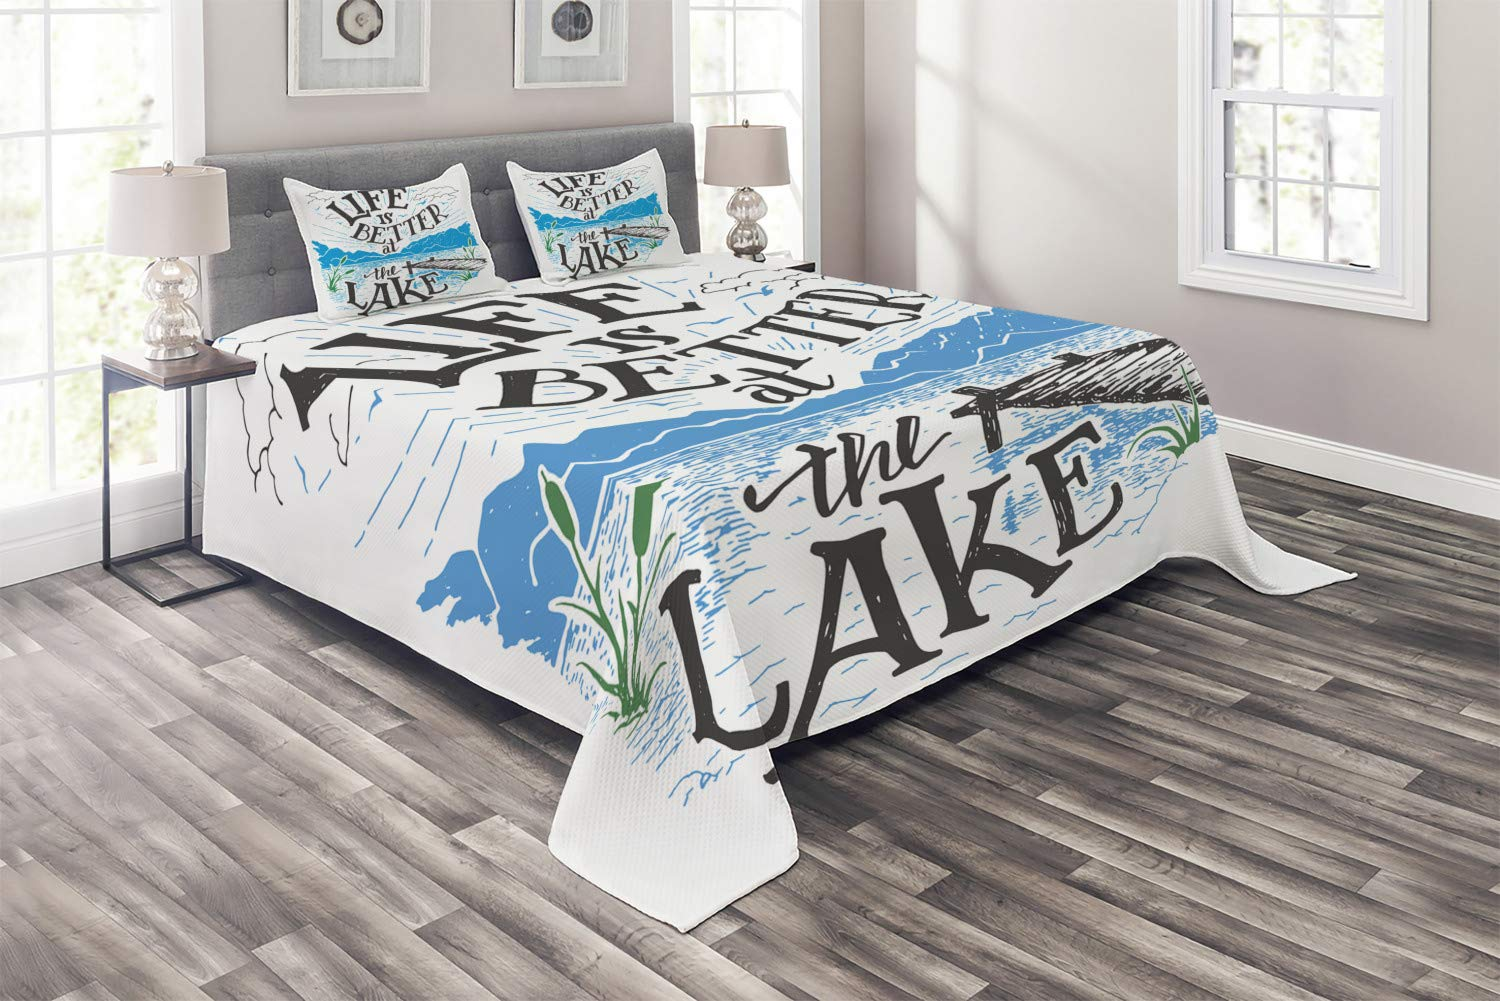 Lunarable Cabin Coverlet Set Queen Size, Life is Better at the Lake Wooden Pier Plants Mountains Sketch Art